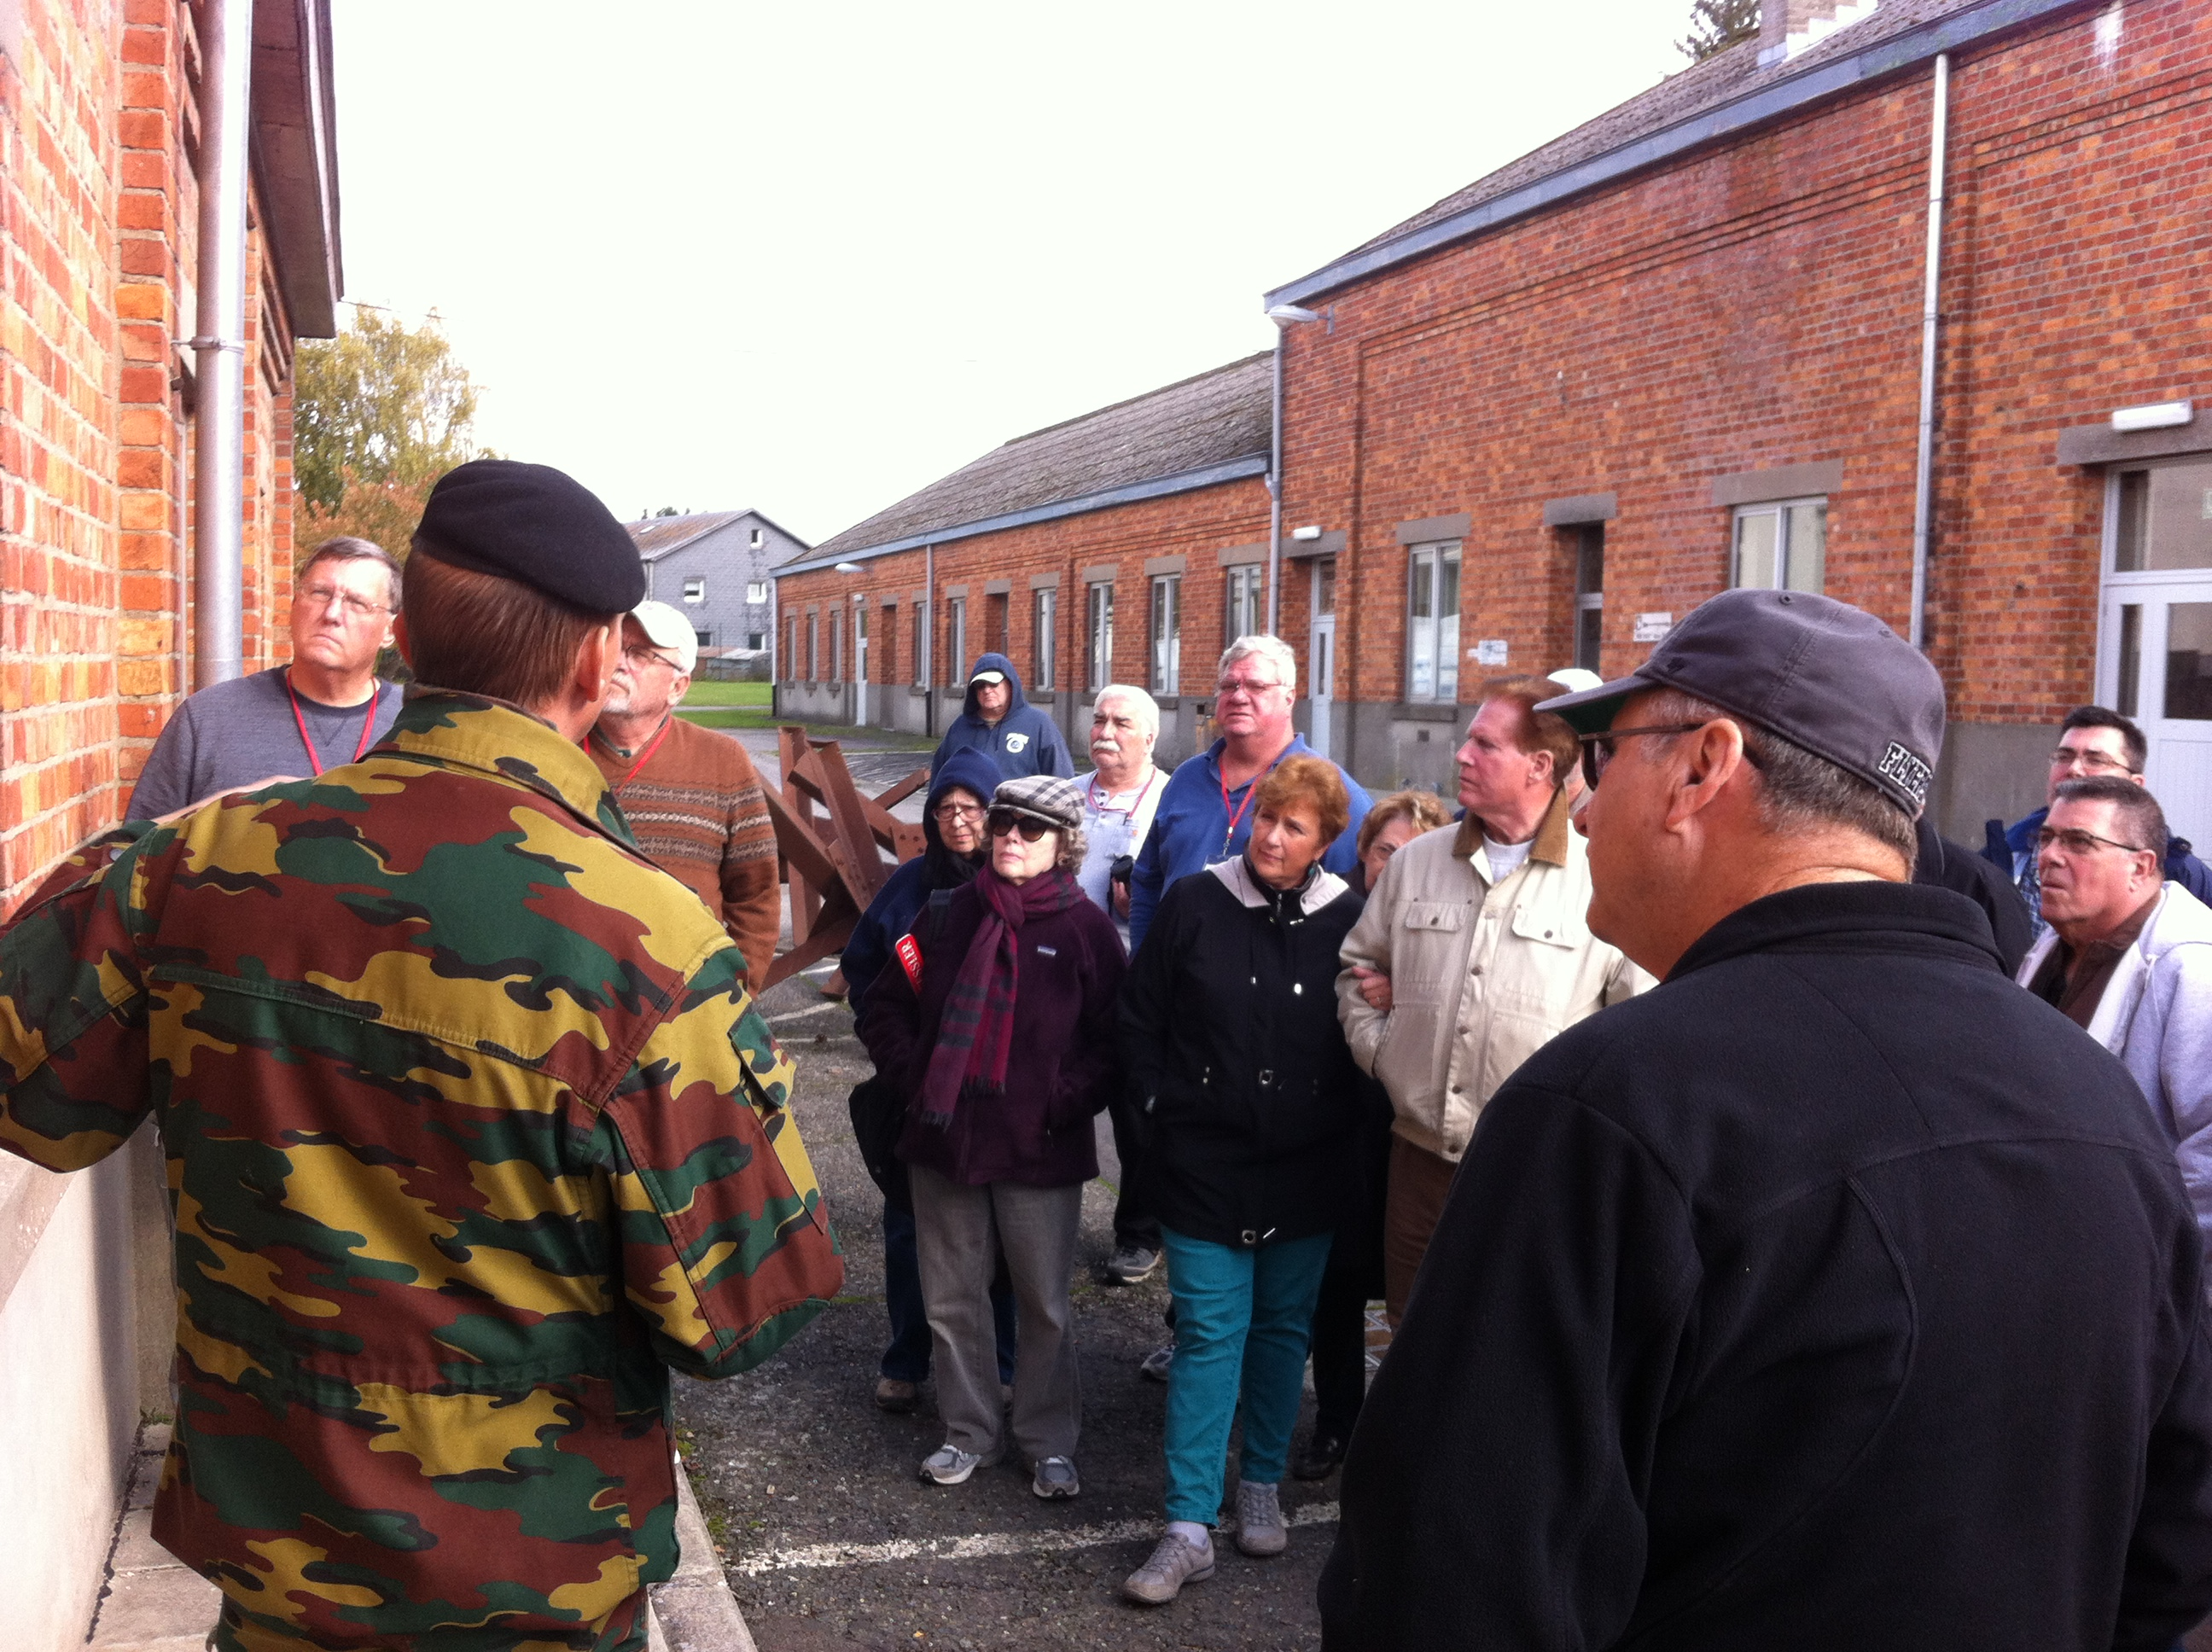 Sgt. Muller in action at Bastogne Barracks